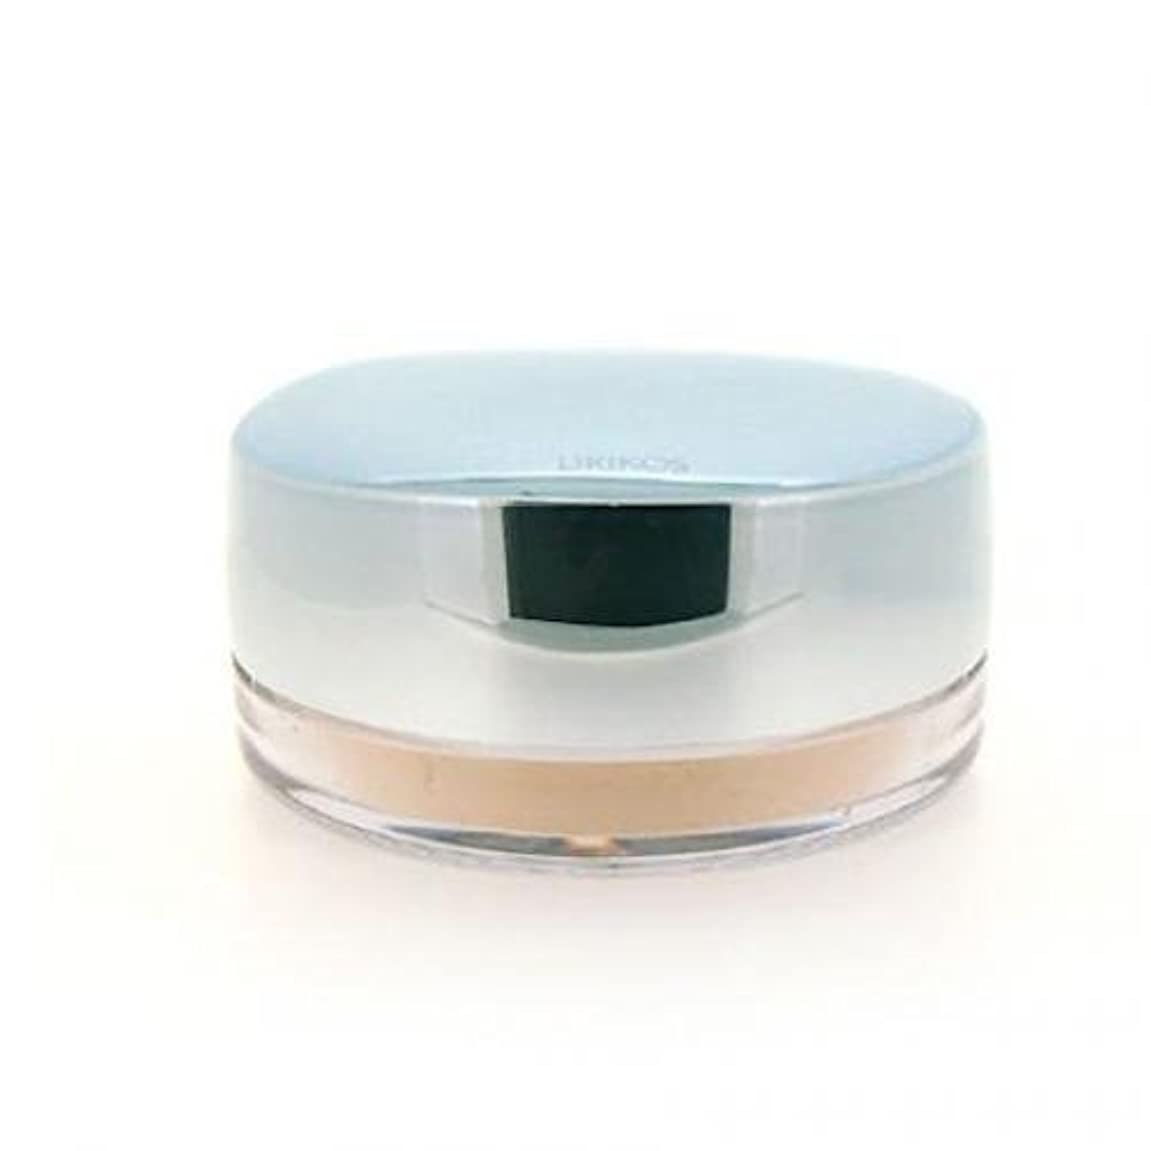 バンドル提案するグラフィックLIRIKOS Marine Radiance Face Powder No.1/ Made in Korea